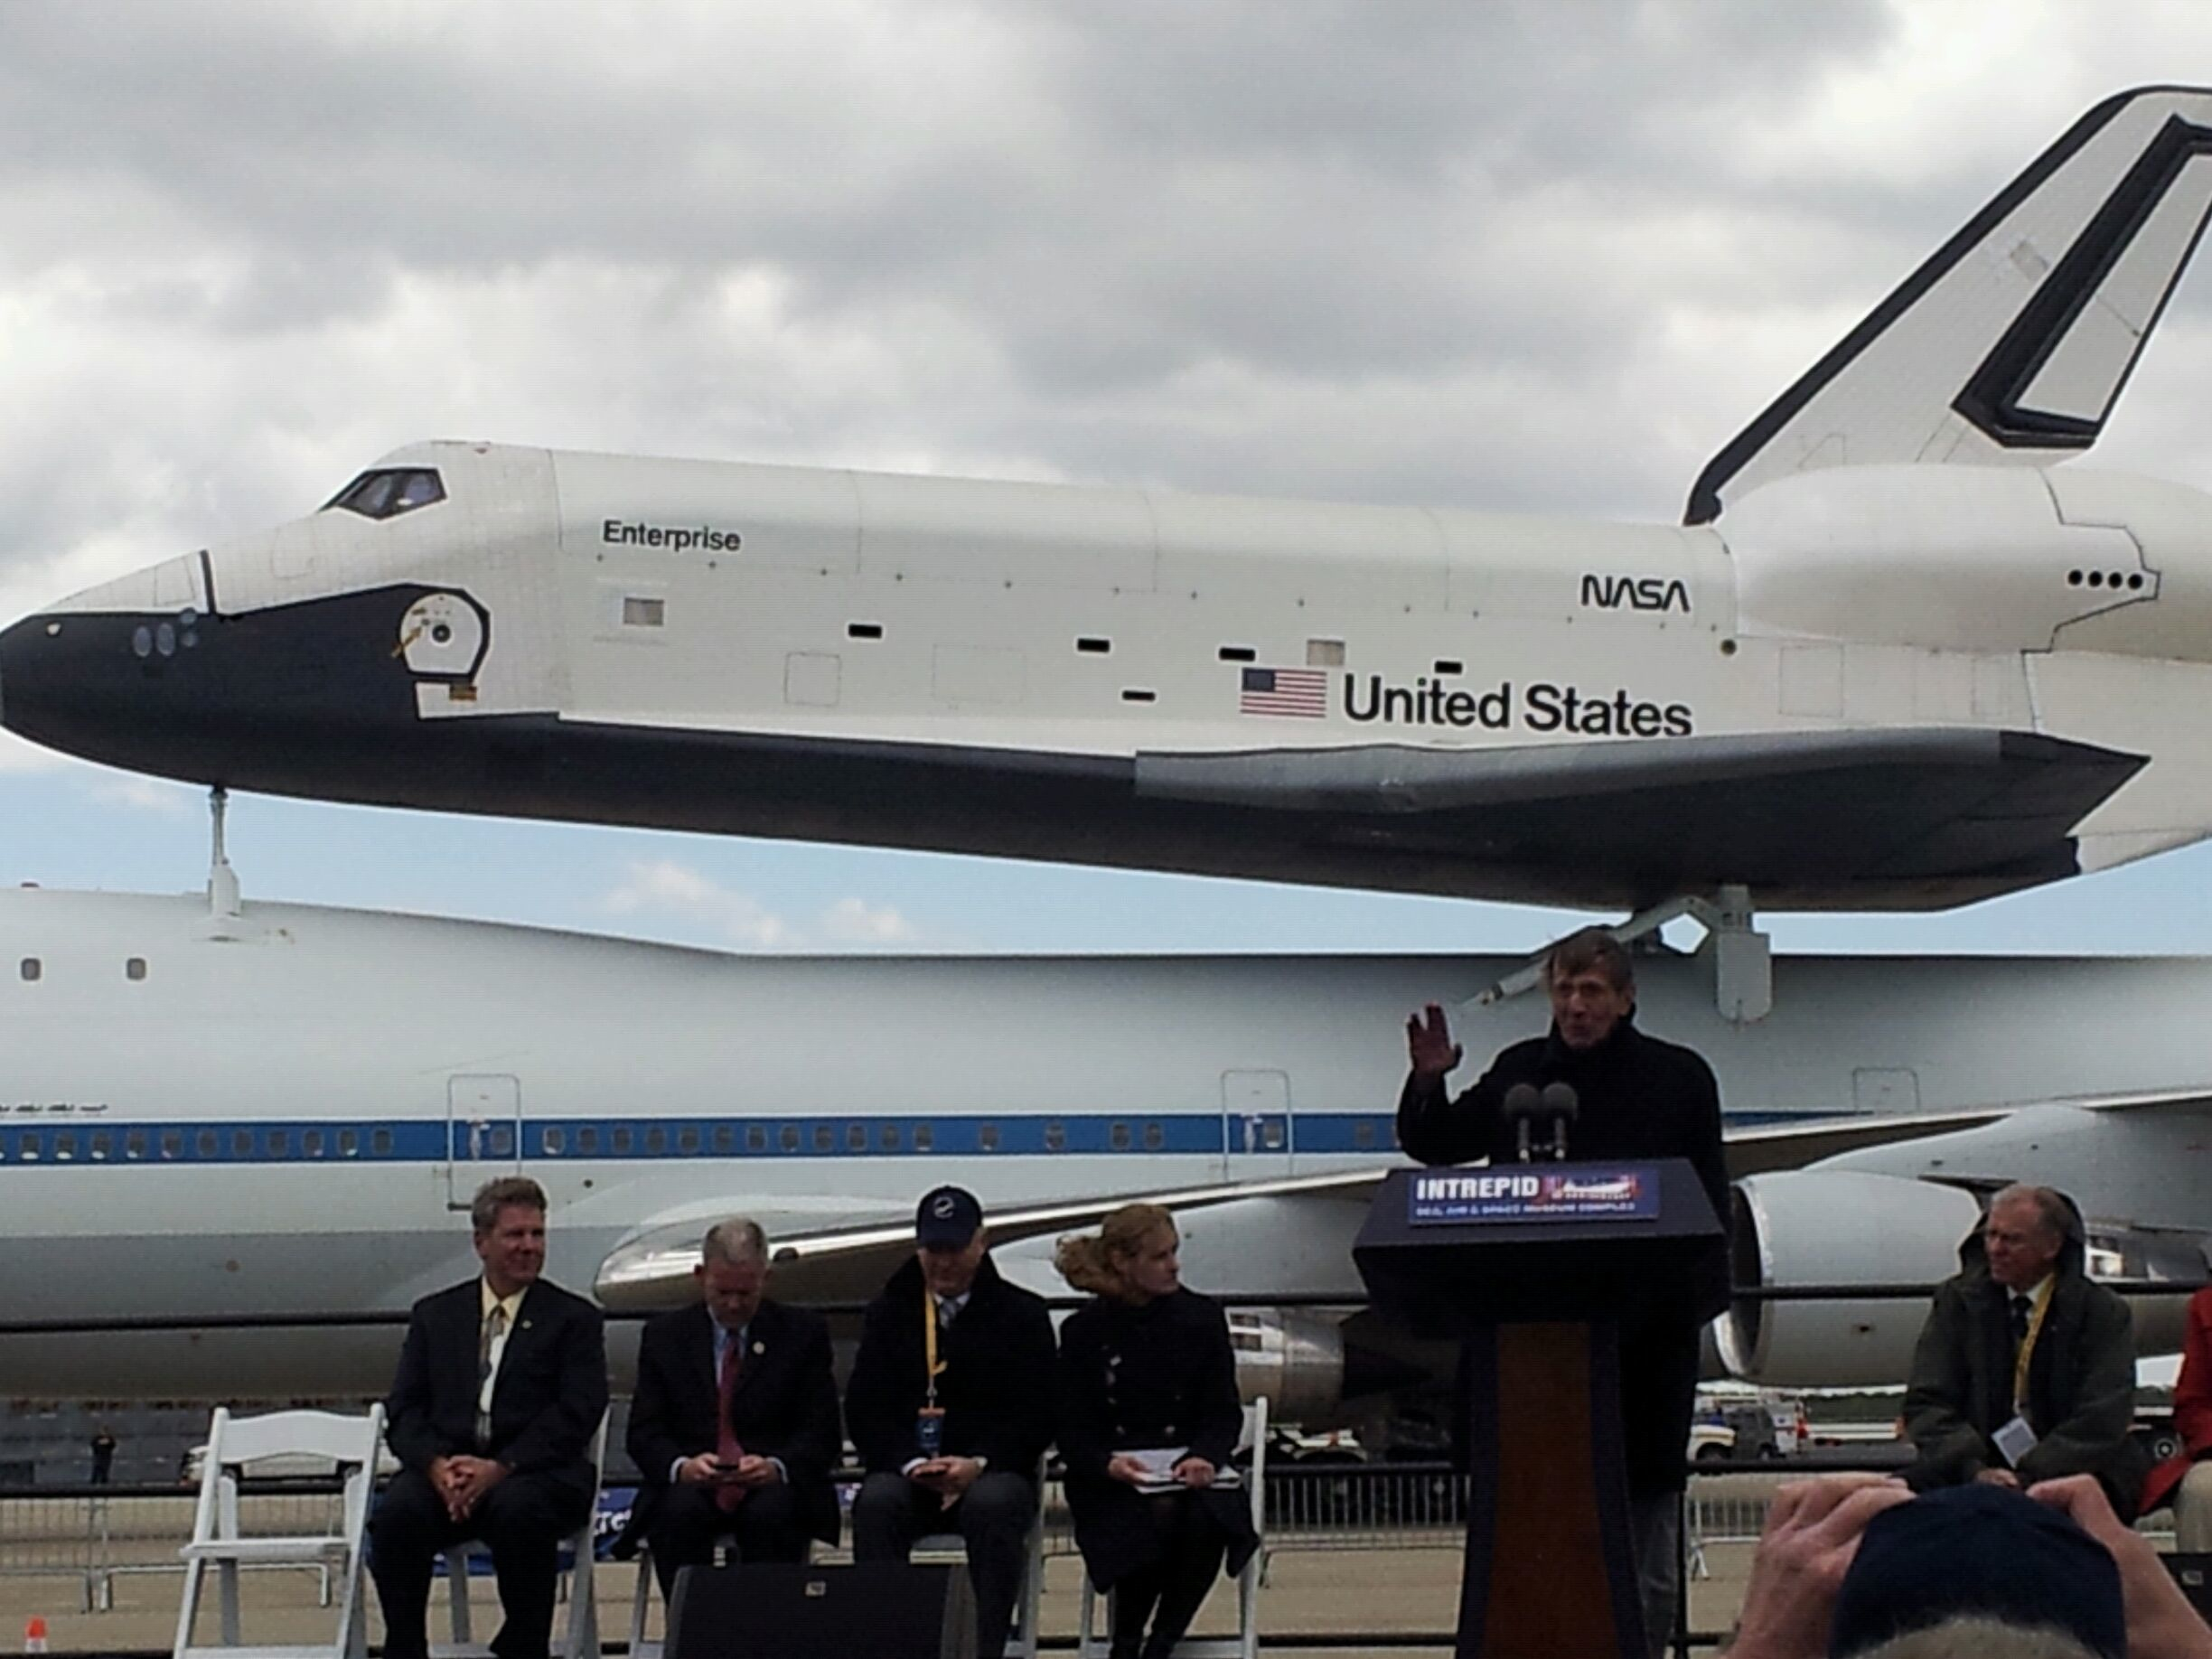 Leonard Nimoy to Shuttle Enterprise: 'Live Long and Prosper' in NYC